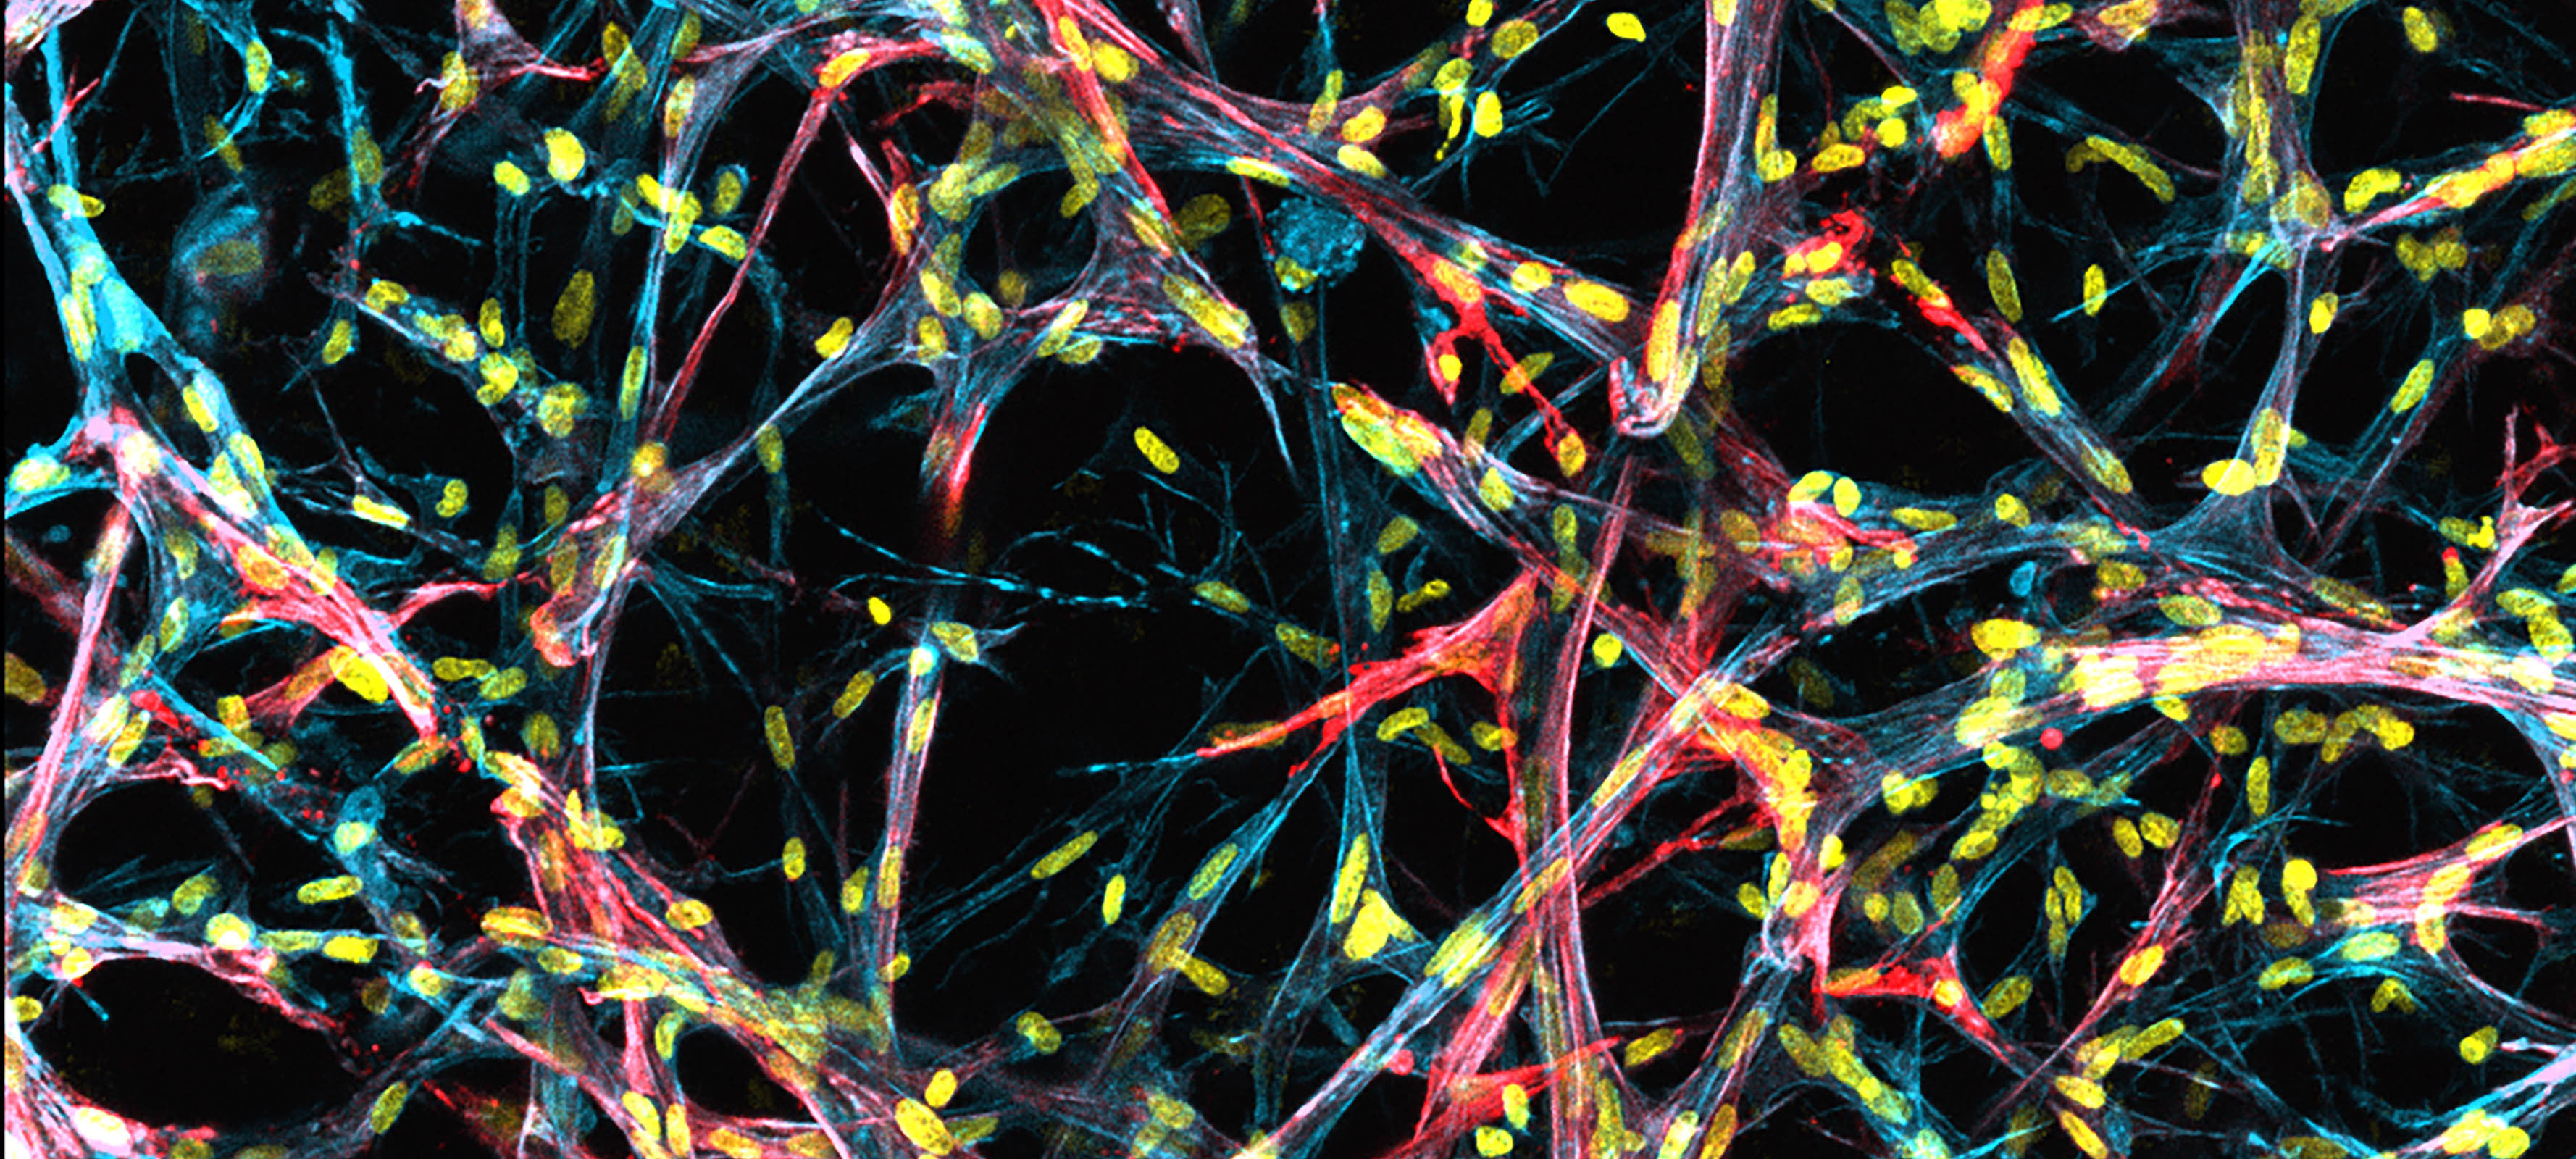 Myofibroblasts can be seen accumulating in the 3d lung connective tissue model even in soft conditions mimicking a healthy lung. Image is stained for cytoskeleton (blue), cell nuclei (yellow), and a marker for myofibroblast activation (alpha-smooth muscle actin, red). Credit: Baker Lab.